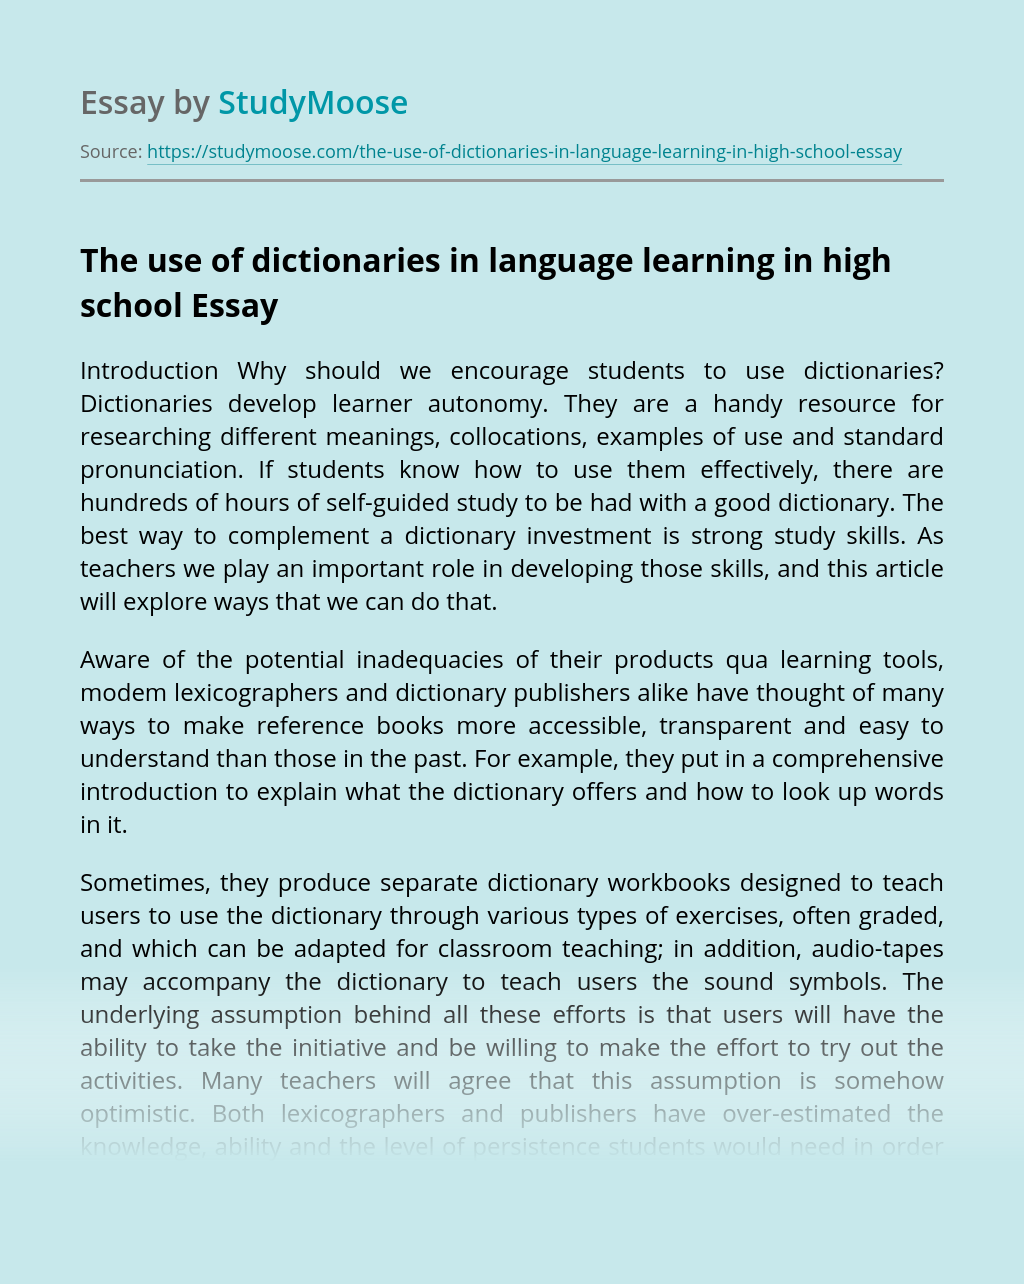 The use of dictionaries in language learning in high school